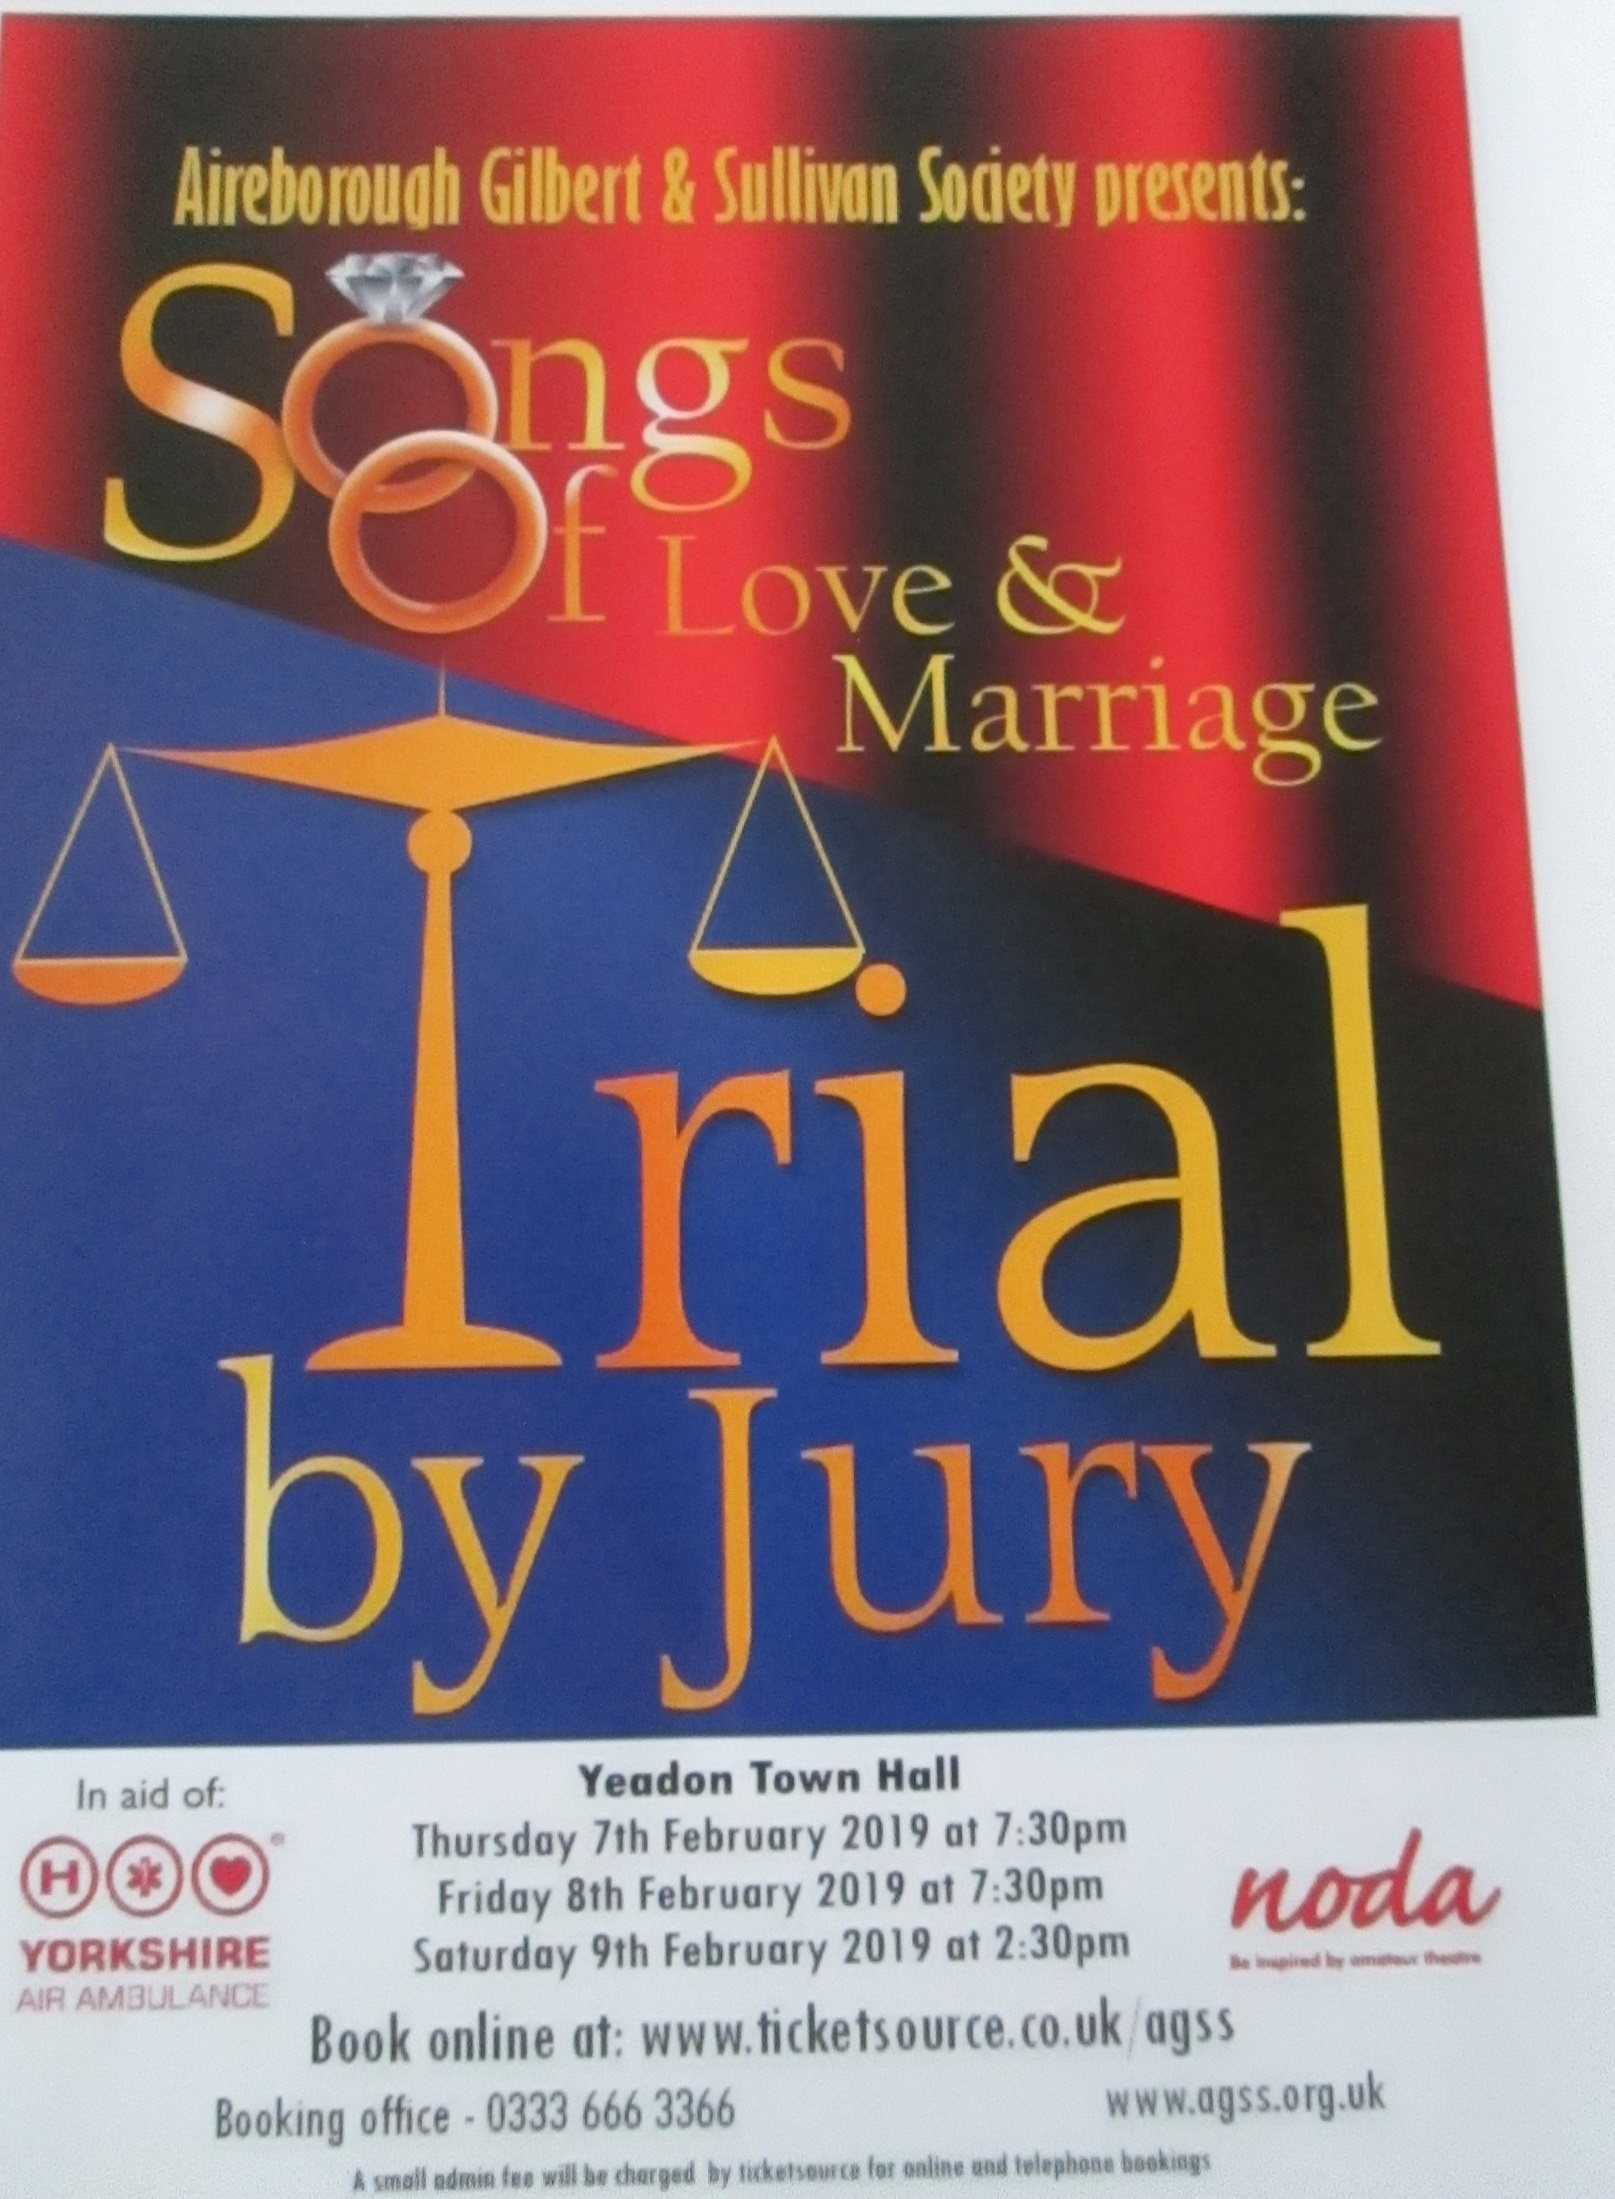 Songs of Love and Marriage and Trial by Jury at Yeadon Town Hall